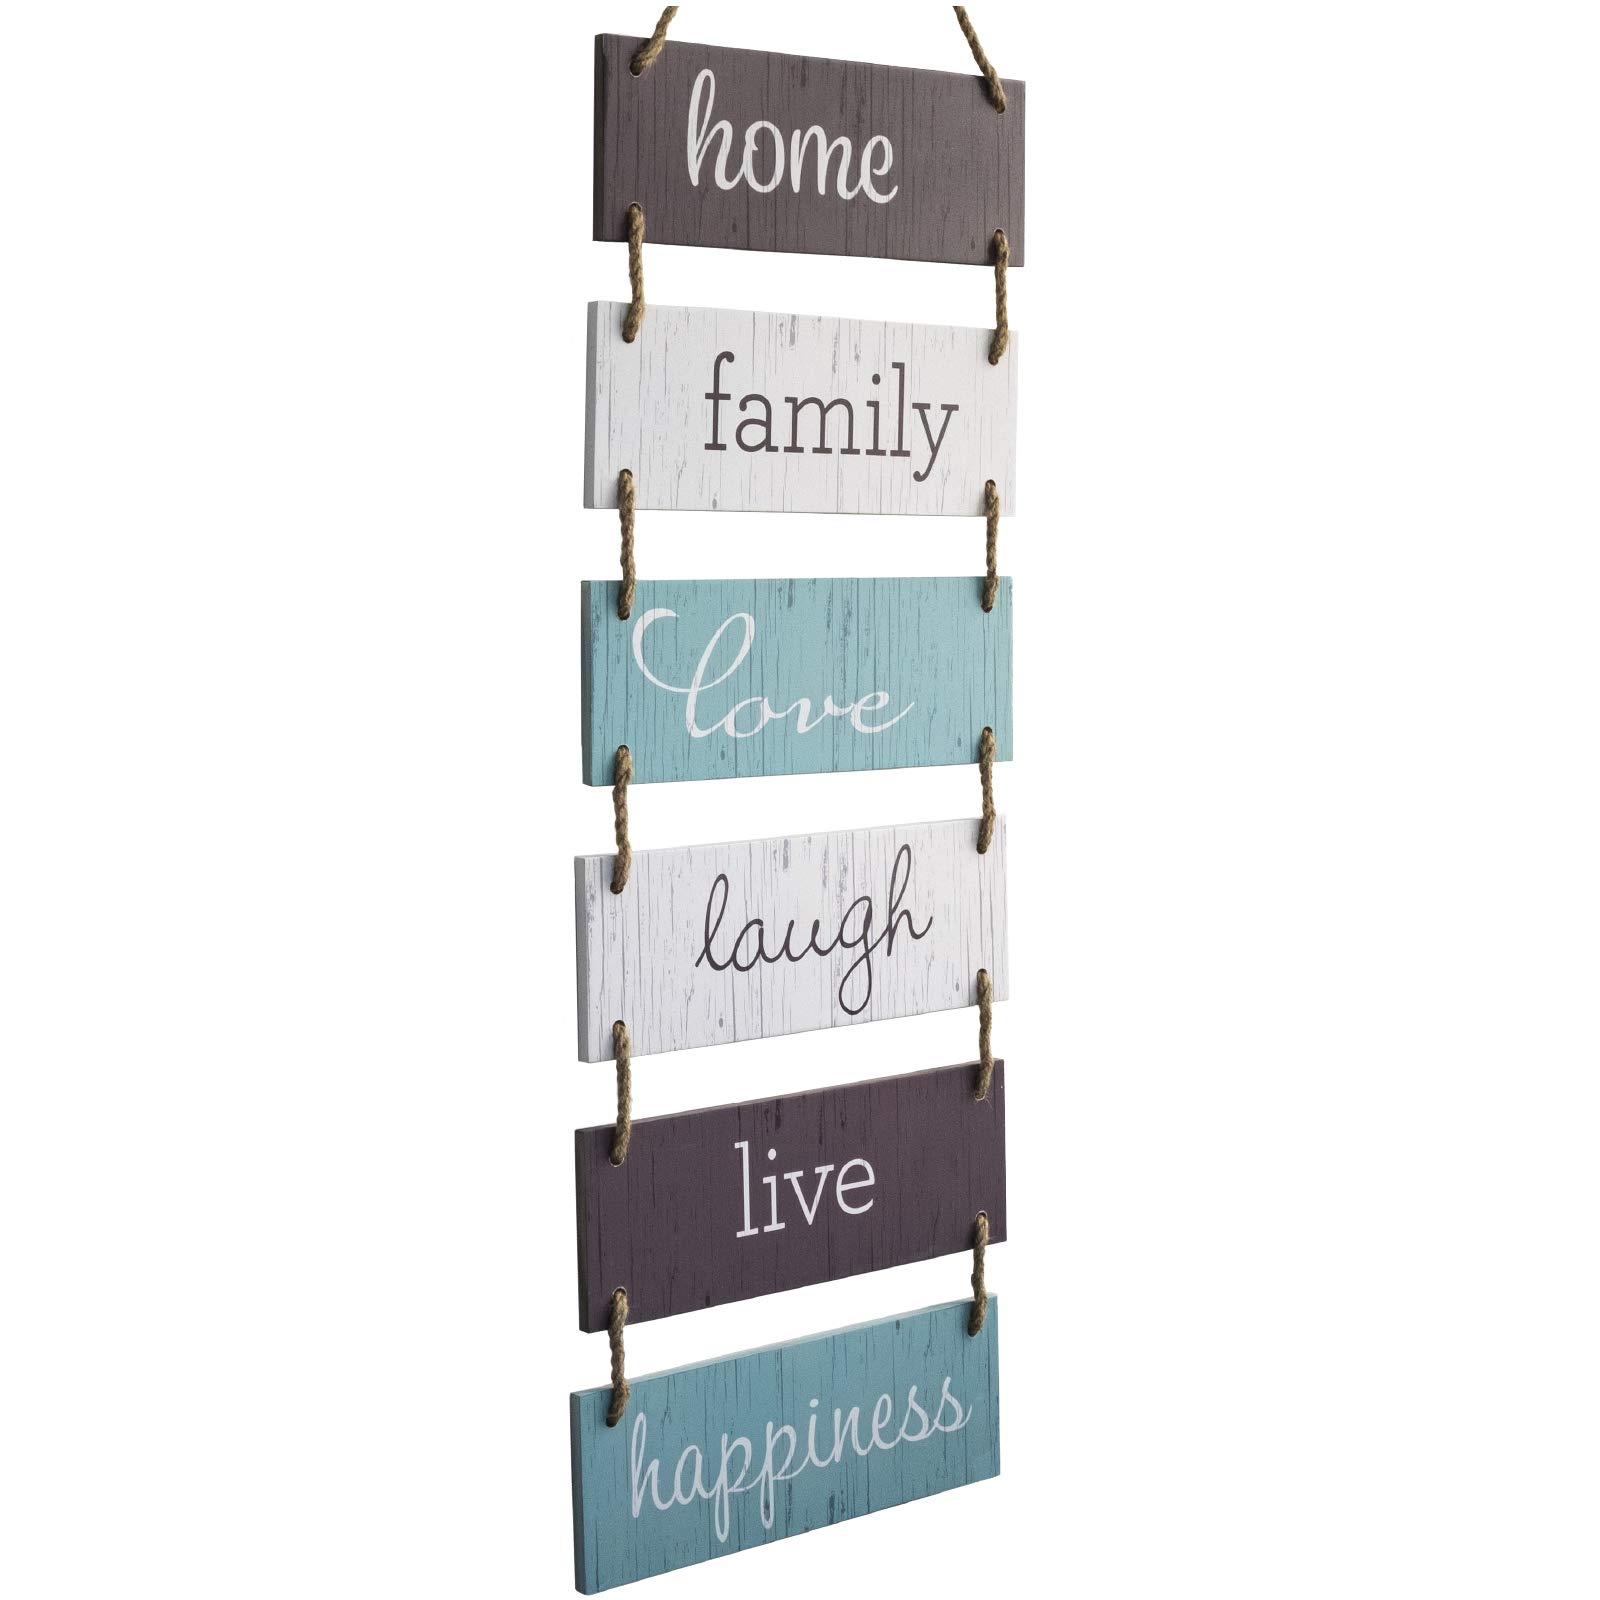 Excello Global Products Large Hanging Wall Sign: Rustic Wooden Decor (Home, Family, Love, Laugh, Live, Happiness) Hanging Wood Wall Decoration (11.75'' x 32'') by Excello Global Products